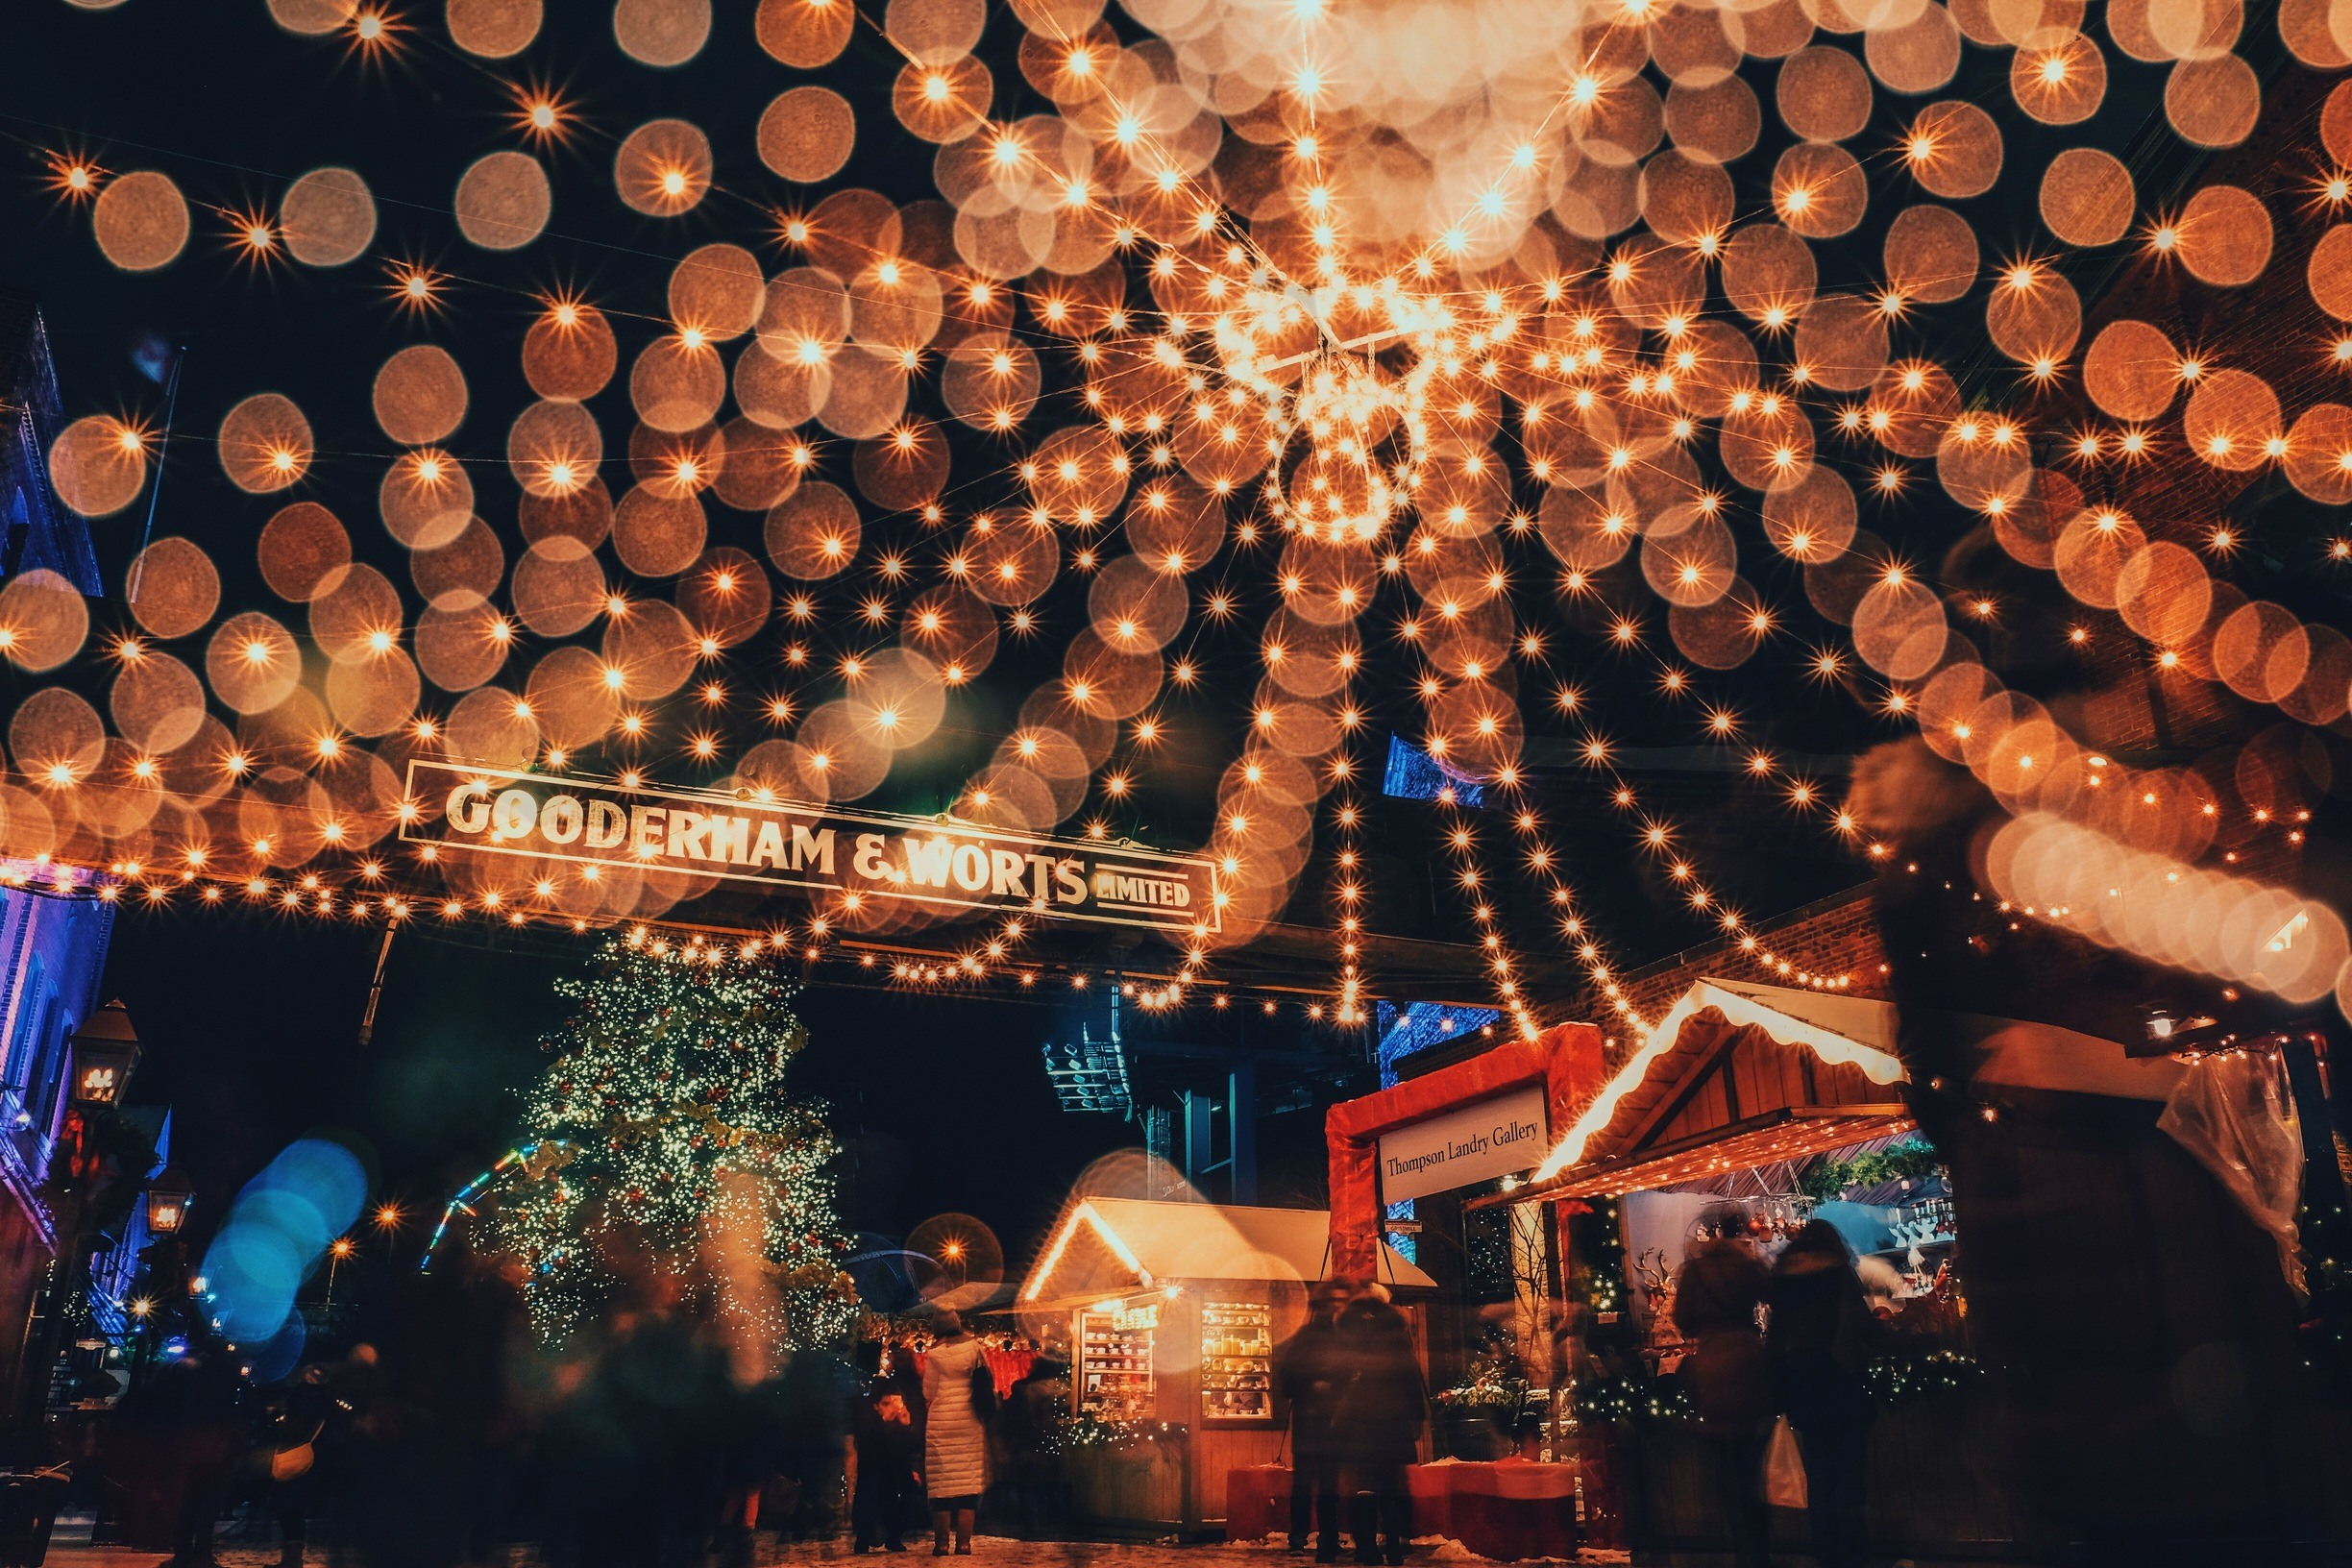 The Toronto Christmas Market will be open longer than ever this year